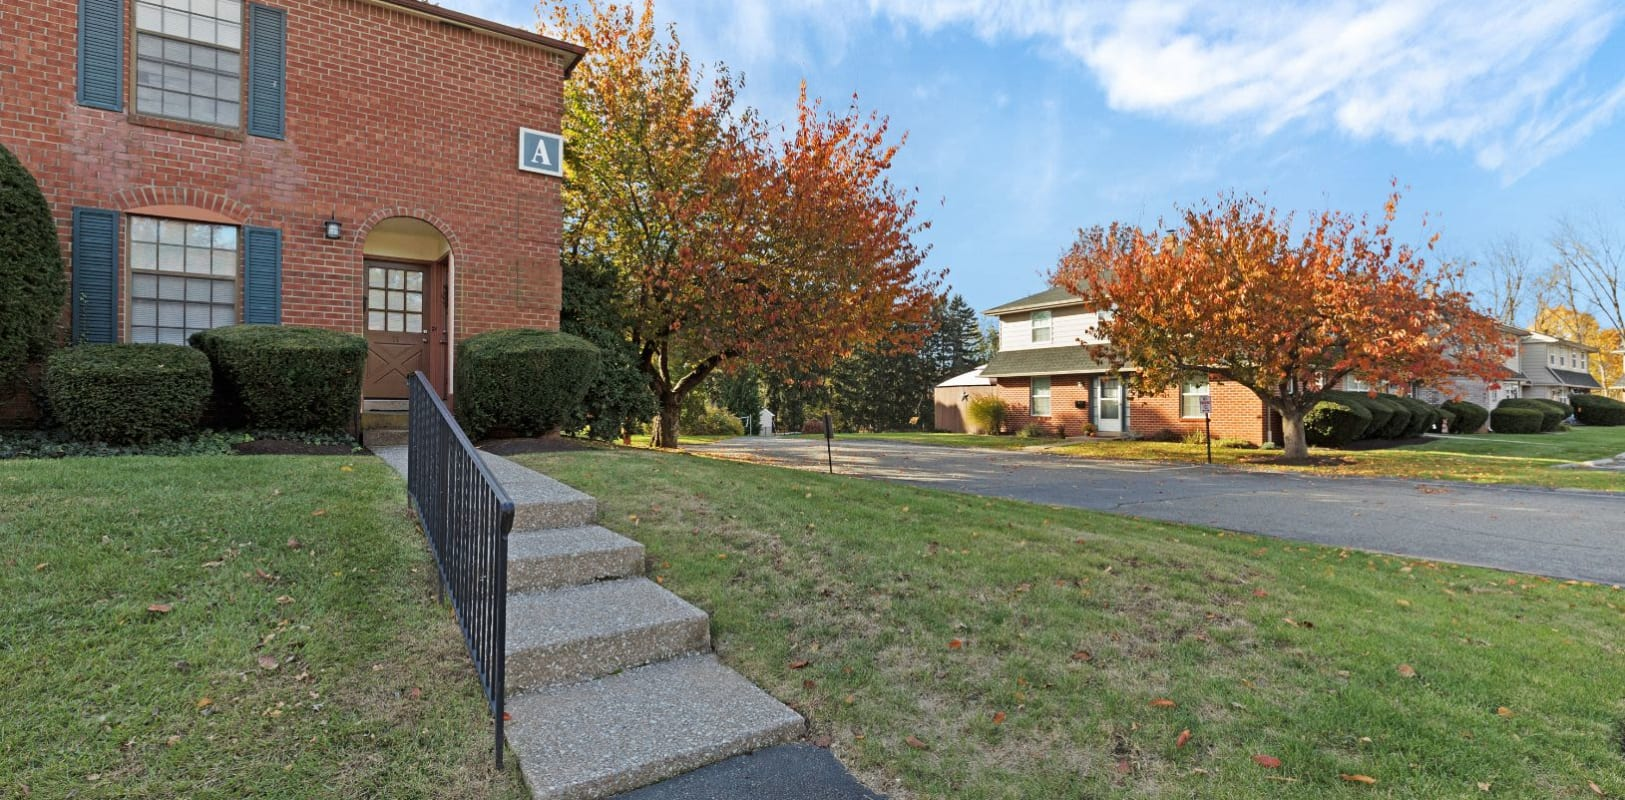 Stair to Bridle Path Apartments in Bethlehem, Pennsylvania